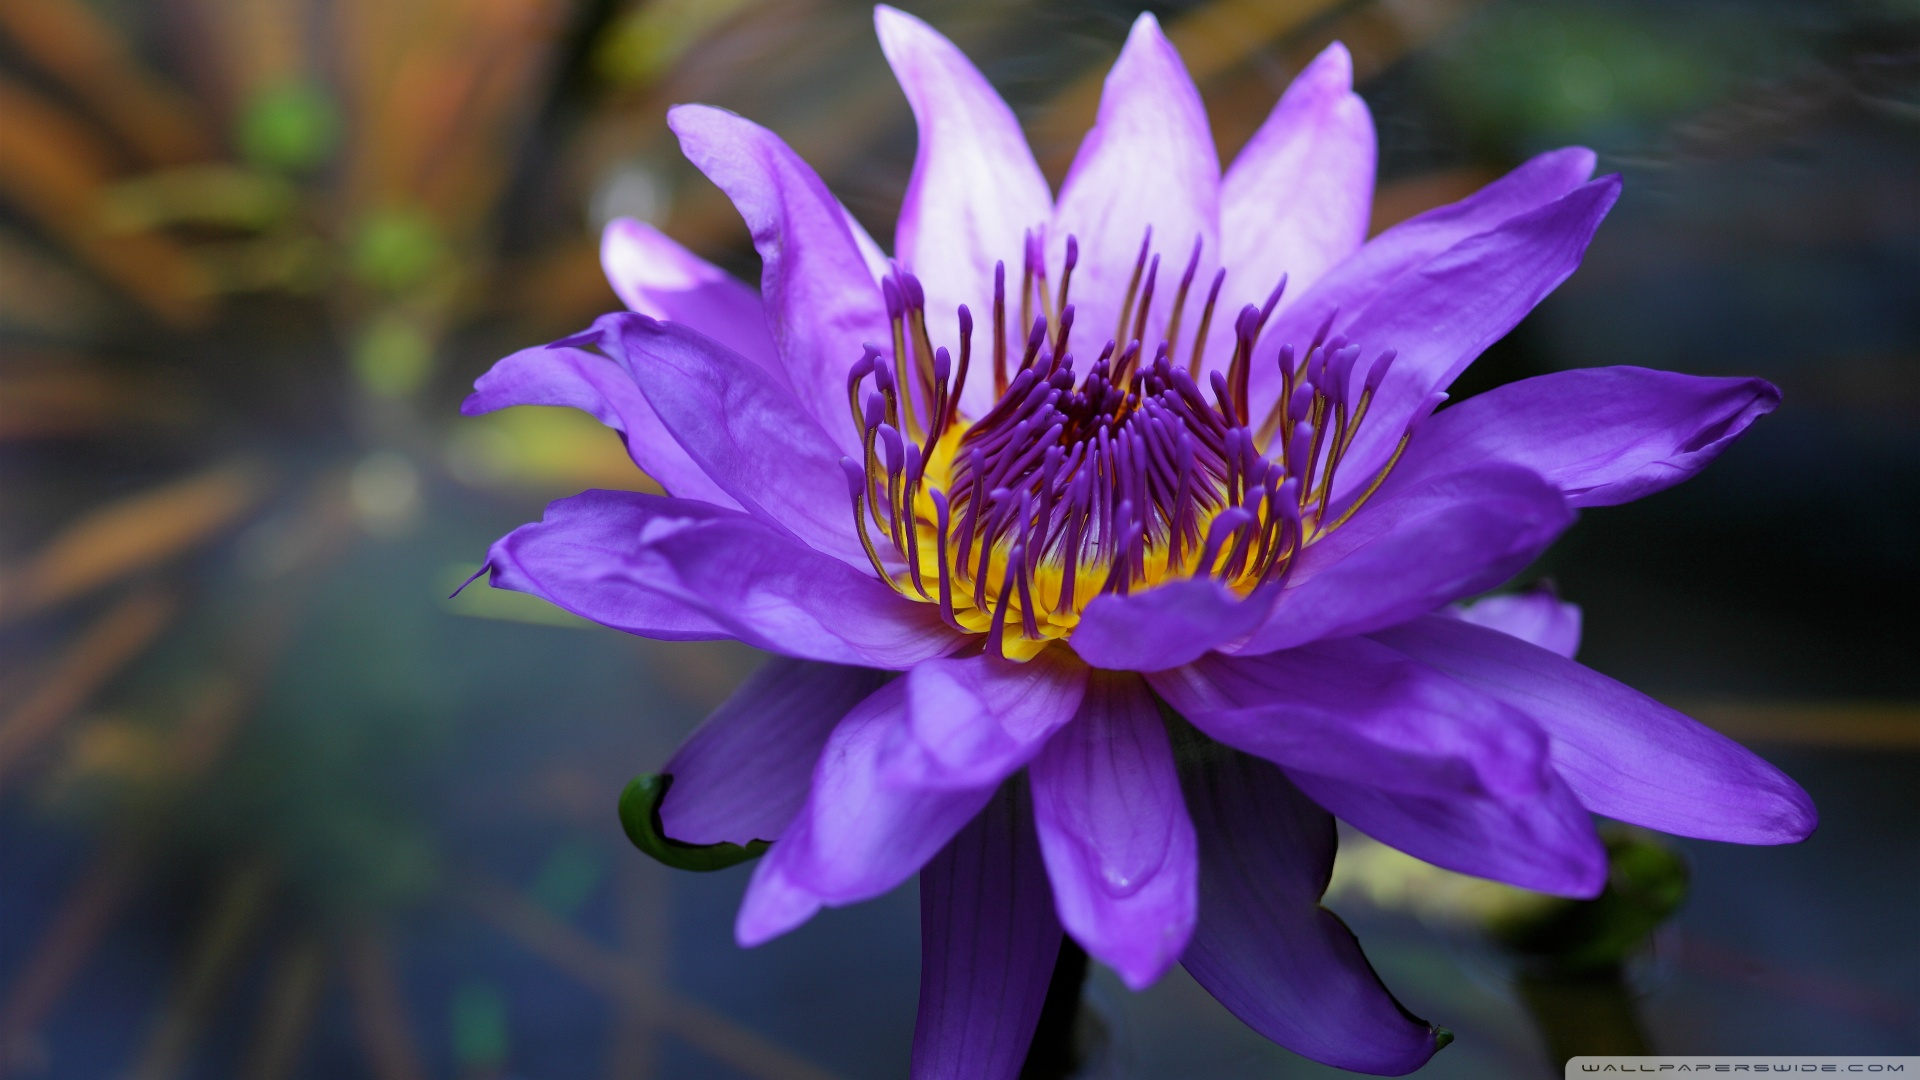 Hd Lavender Wallpaper Purple Water Lily 4k Hd Desktop Wallpaper For 4k Ultra Hd